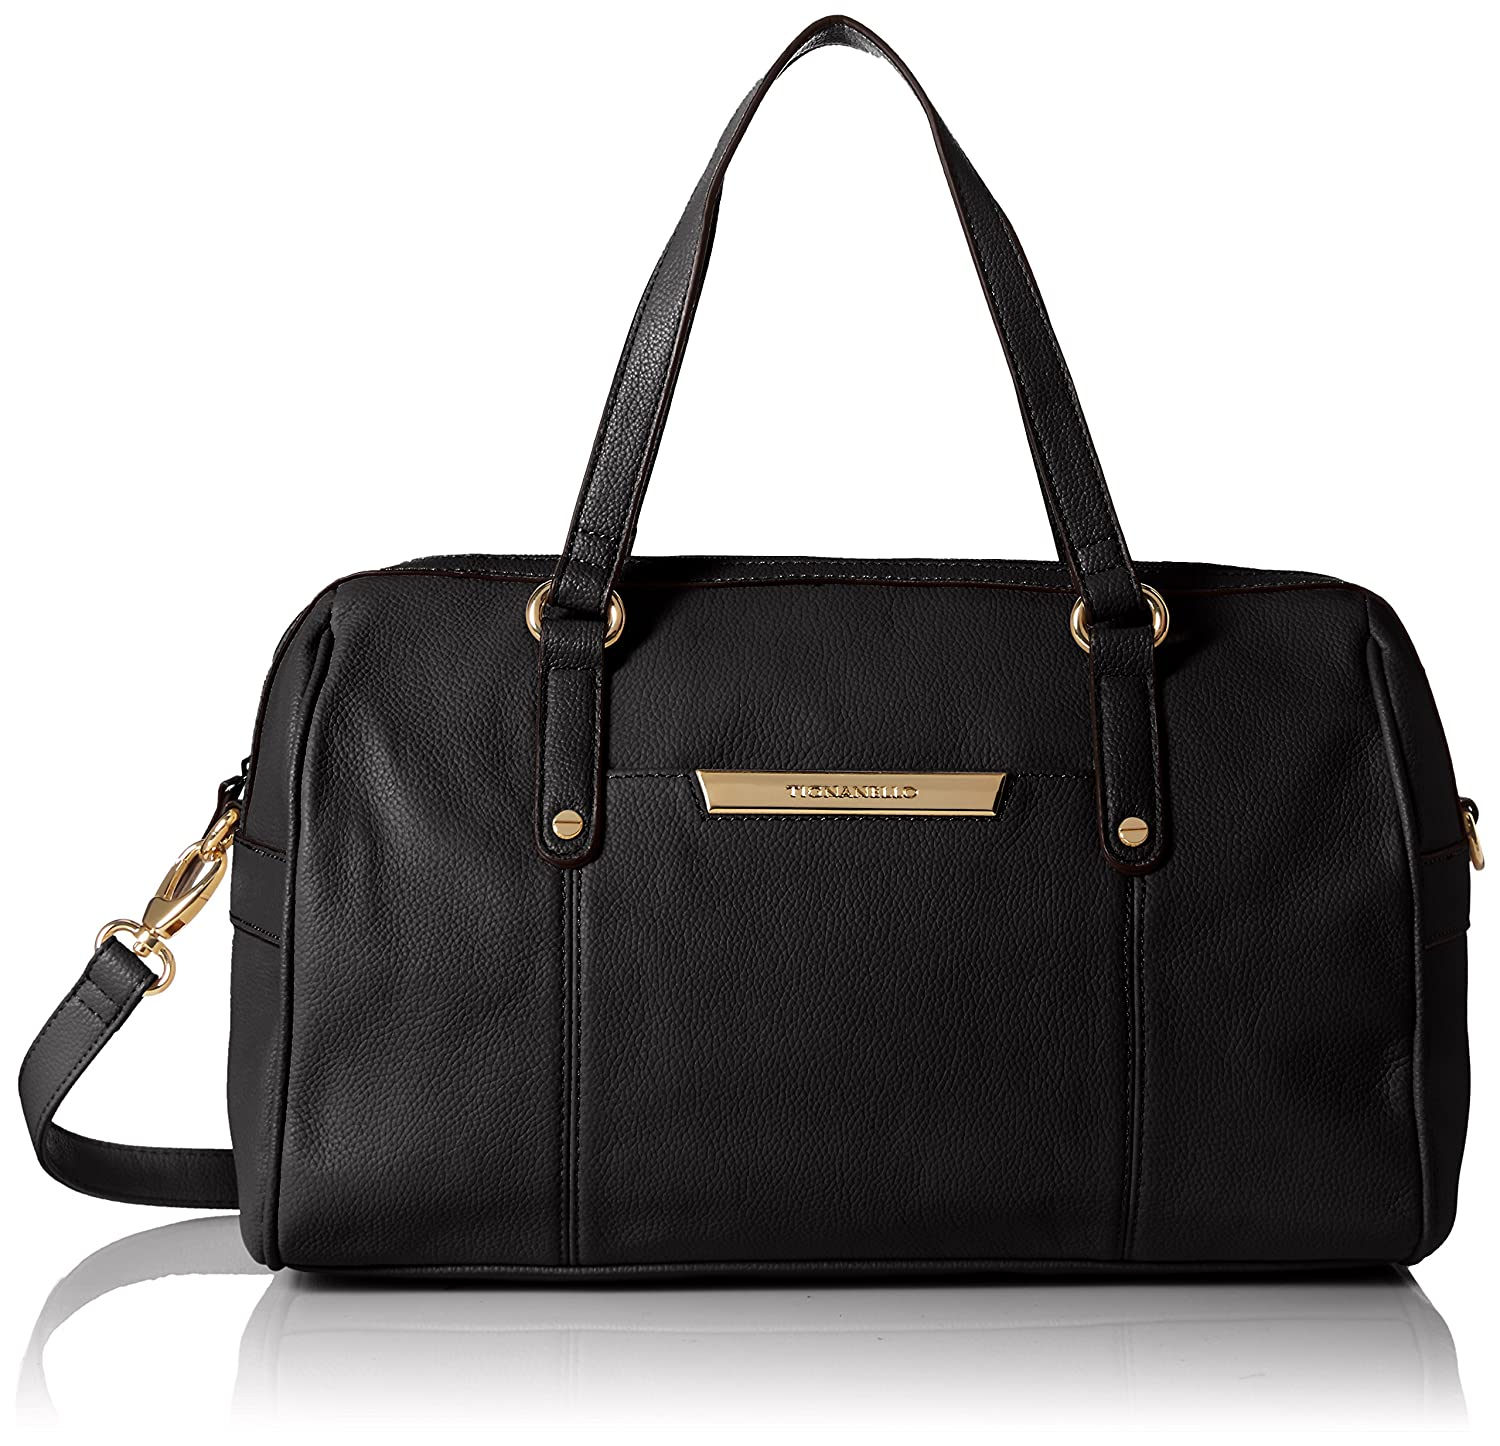 Tignanello Main Street Satchel Shoulder Bag